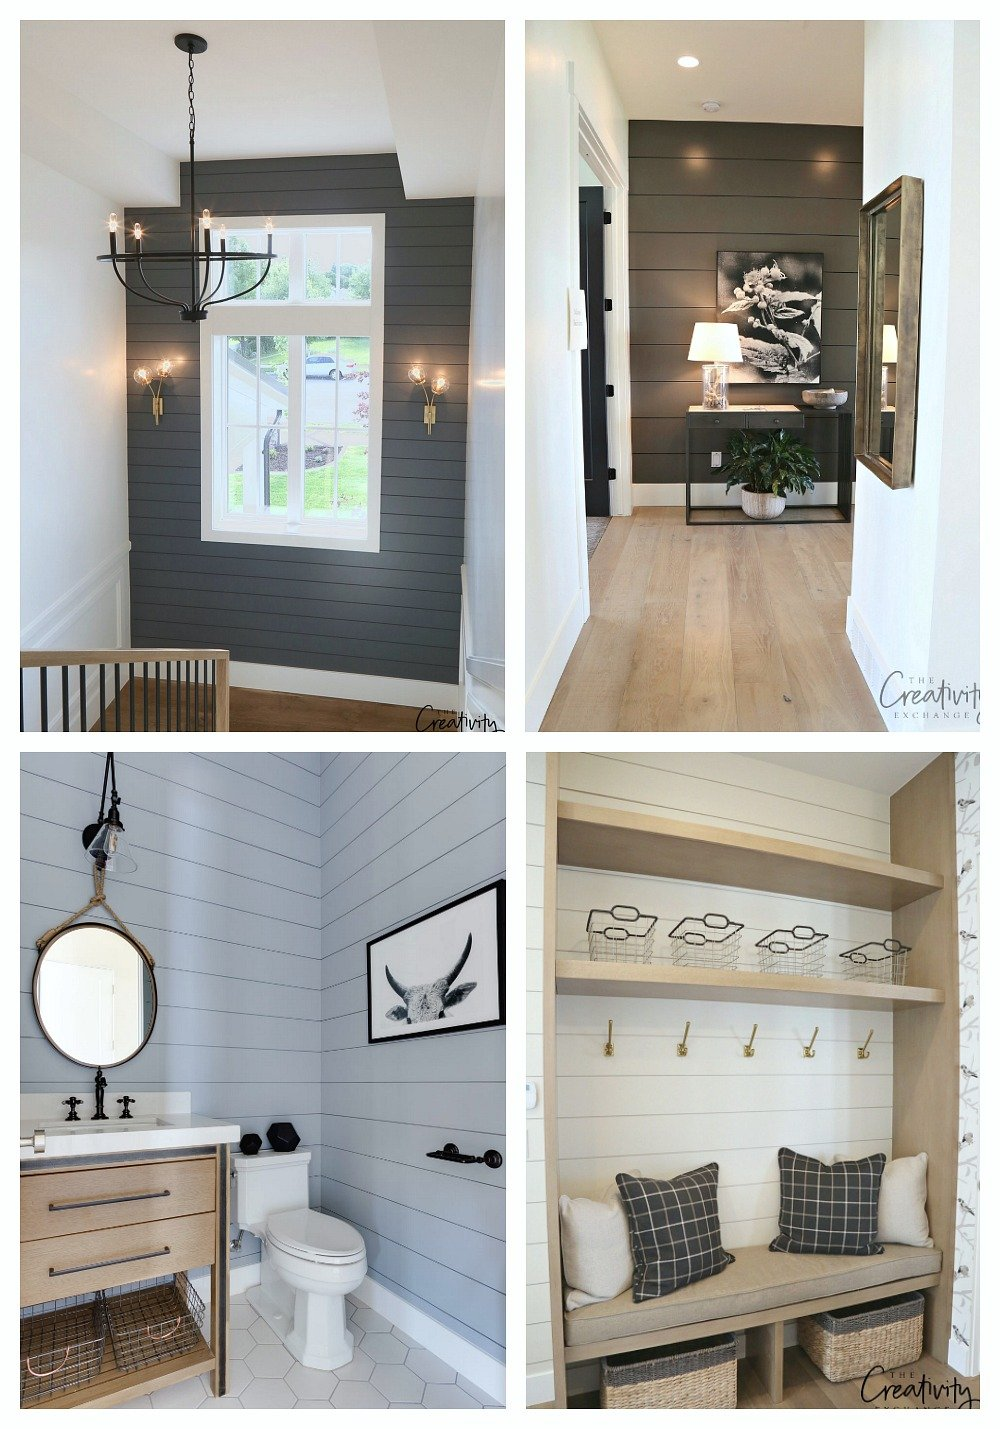 Painted shiplap walls add beautiful drama